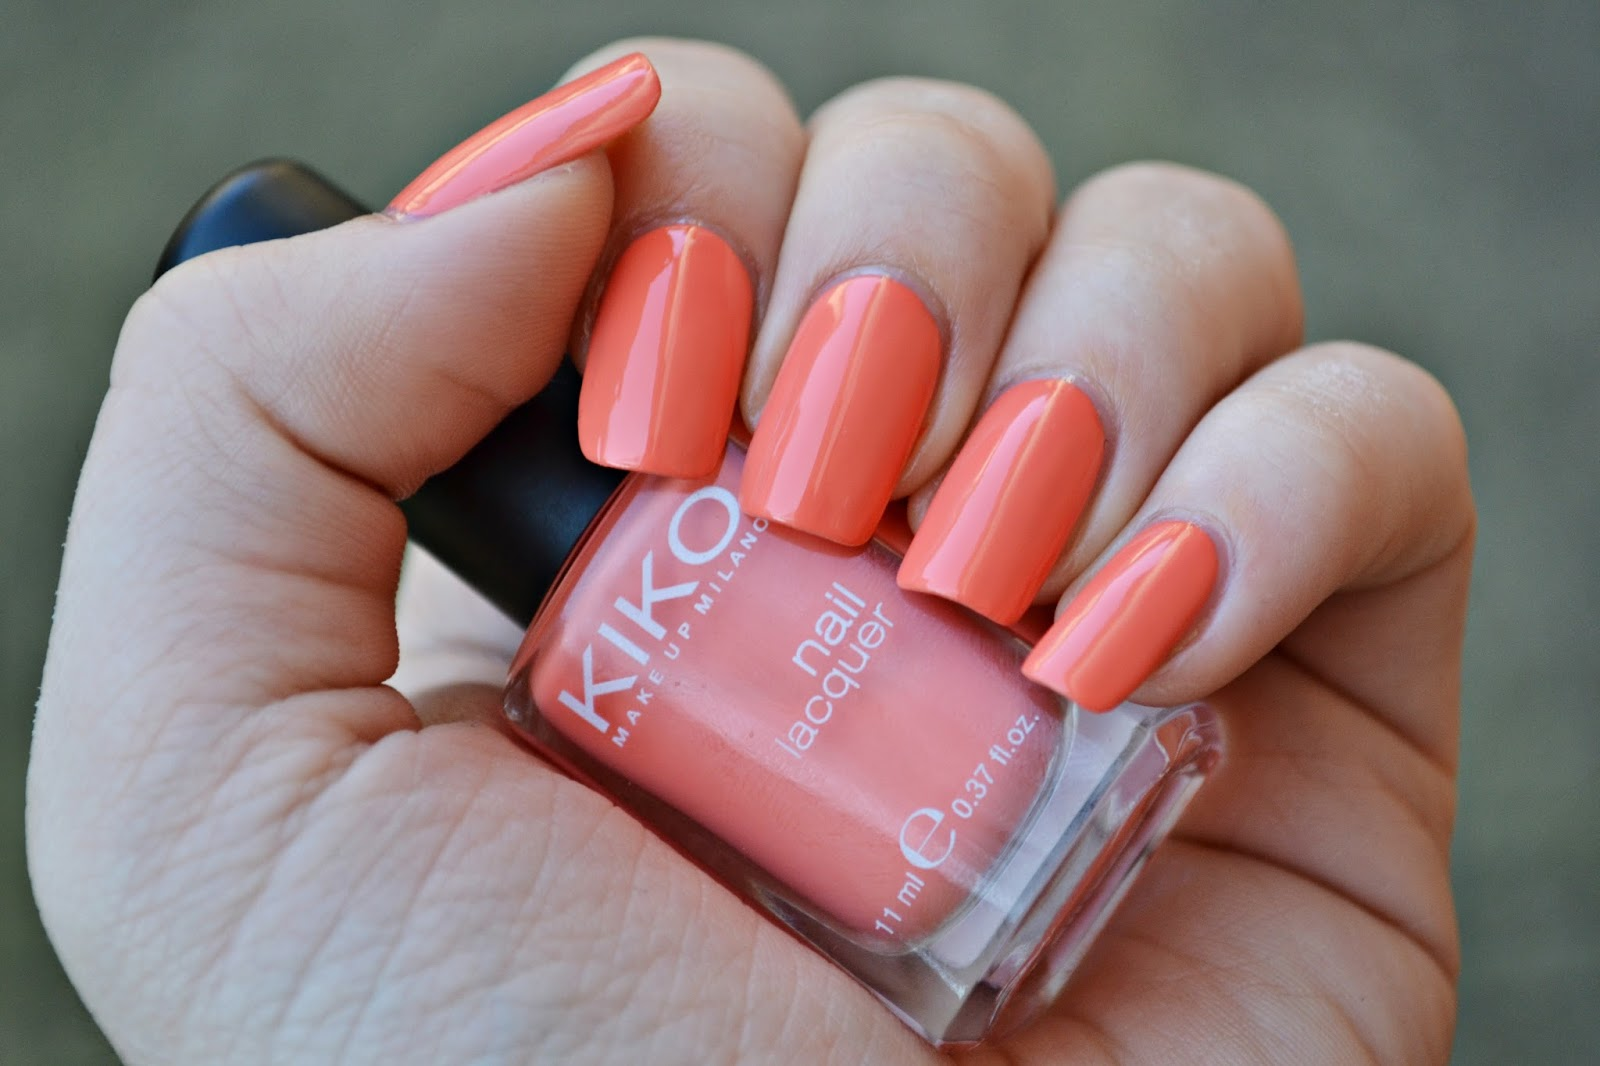 Kiko 358 Peach Rose In Season Spring